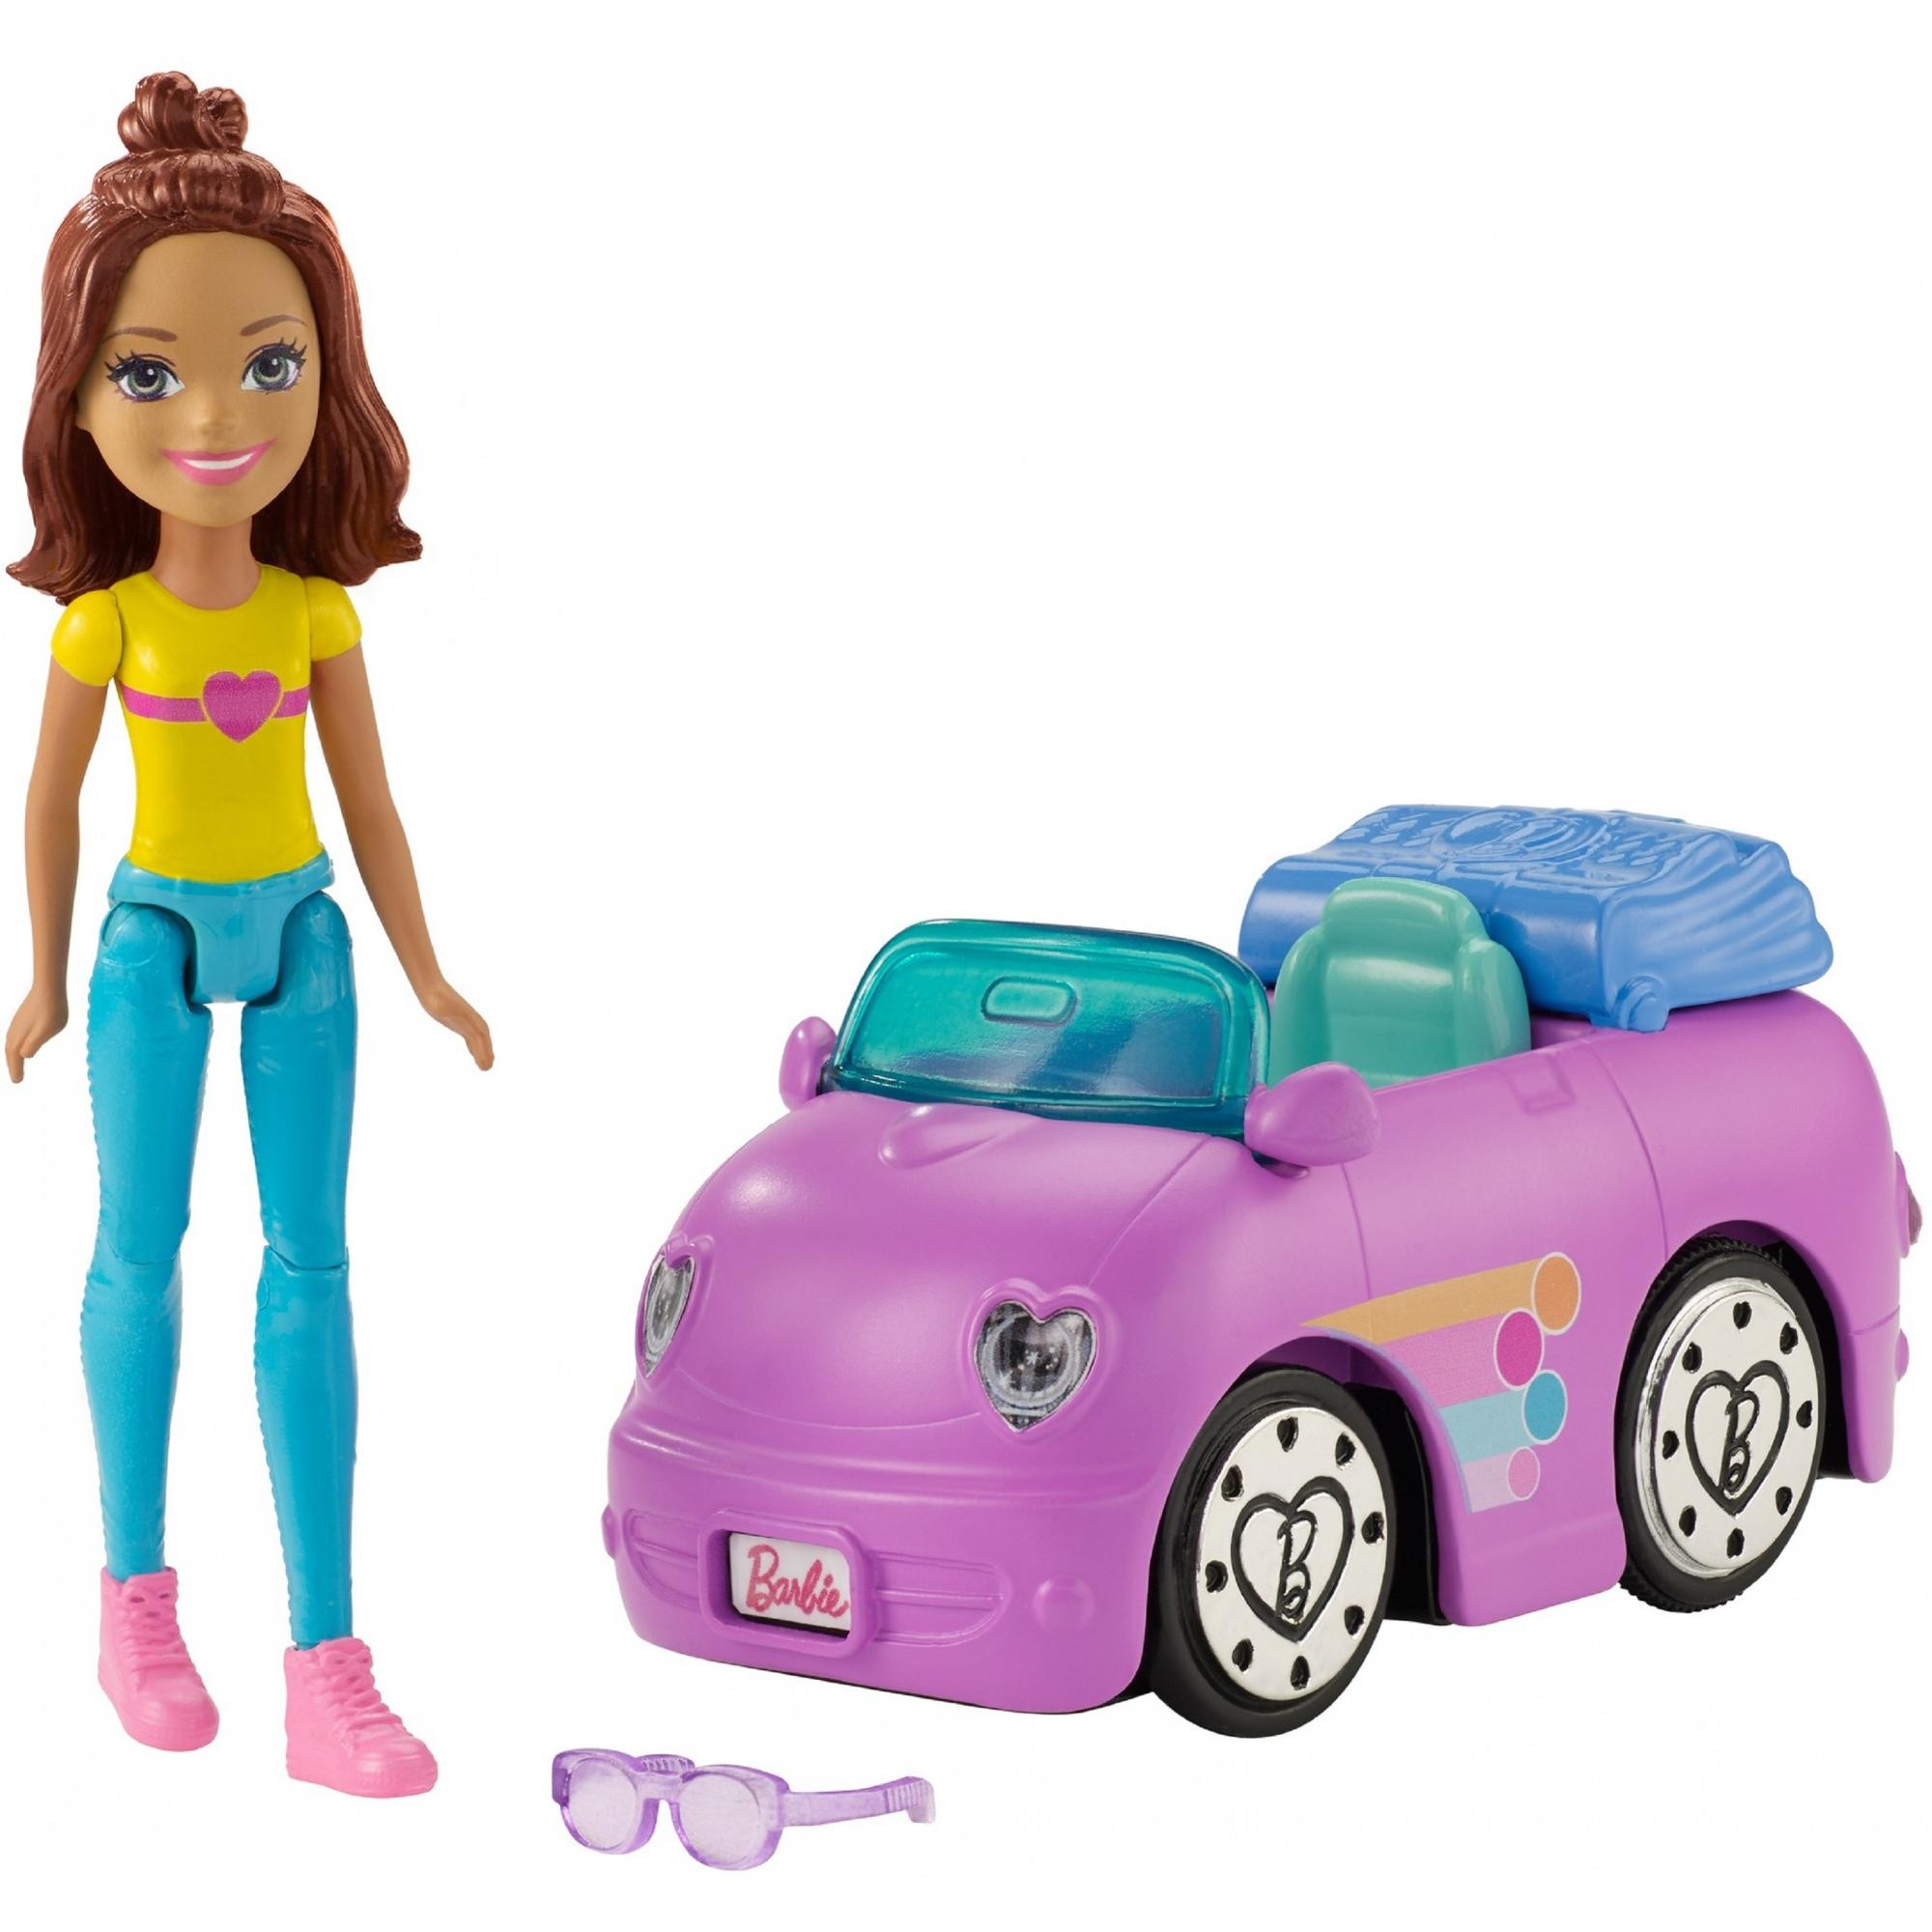 Barbie On the Go Purple Car and Doll